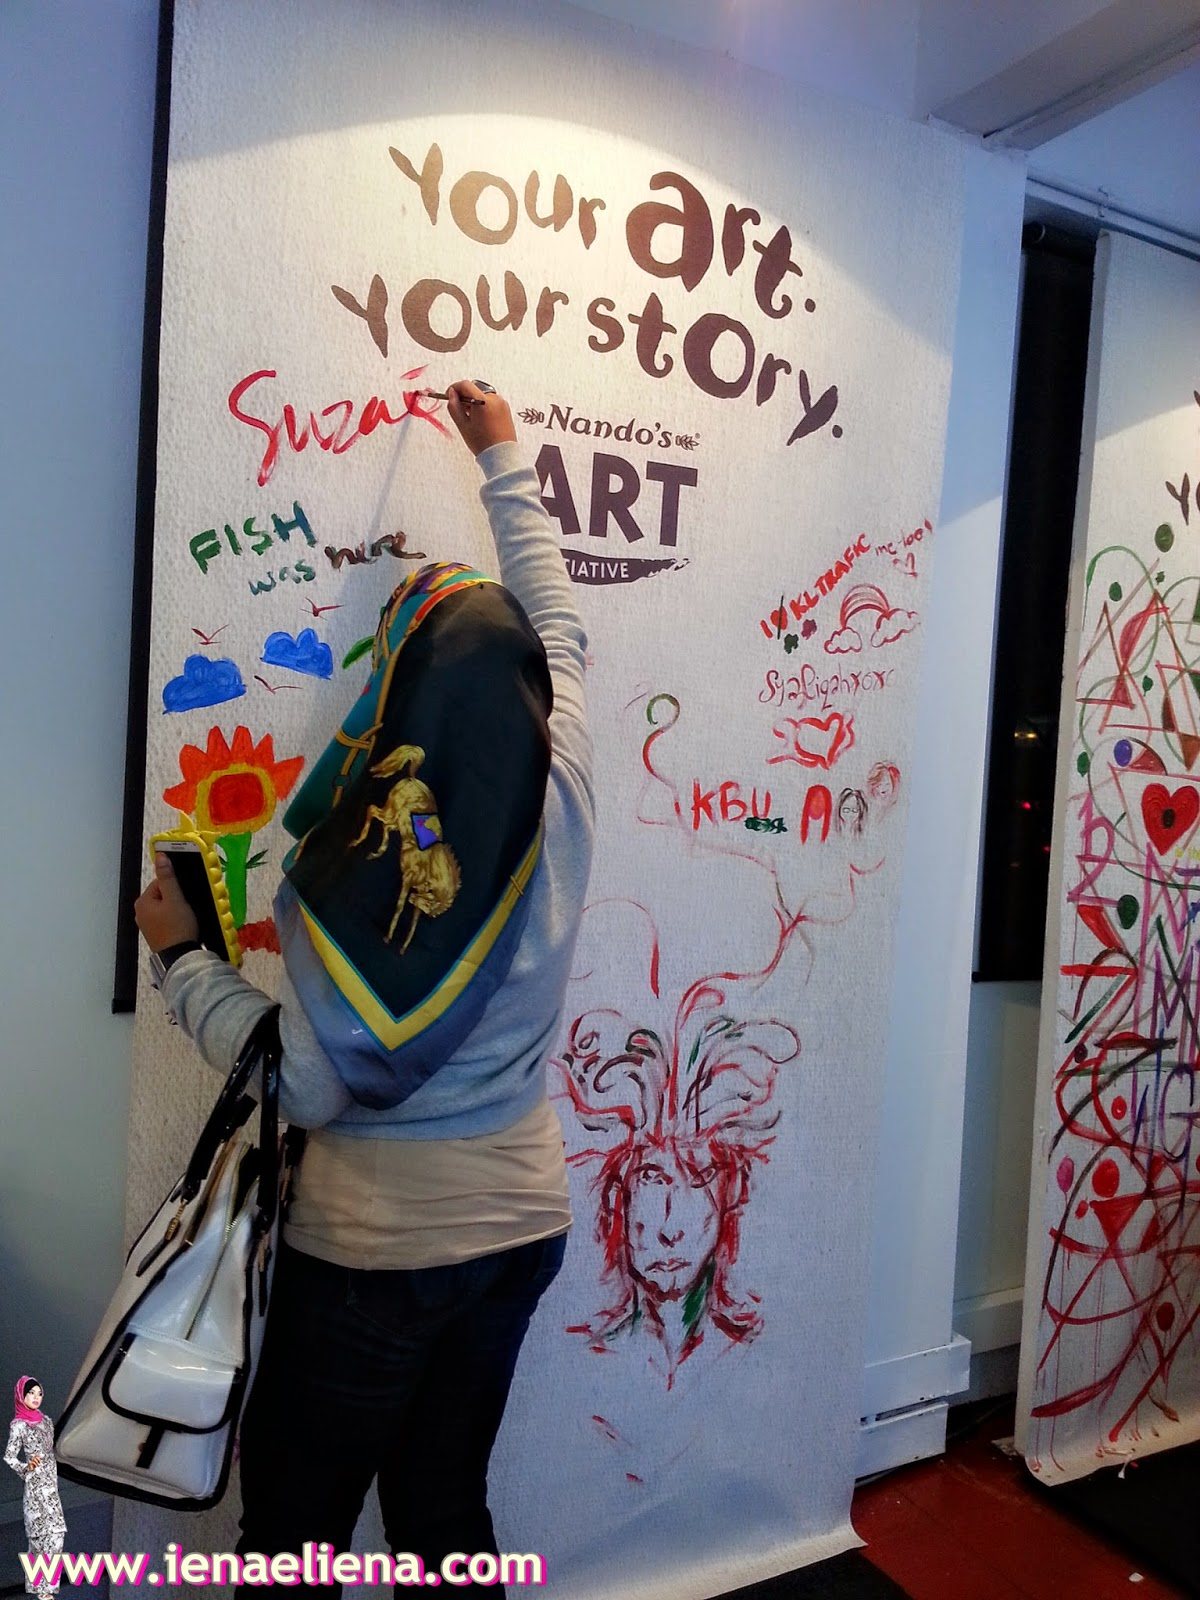 Your Arty Your Story @ Nando's Art Initiative